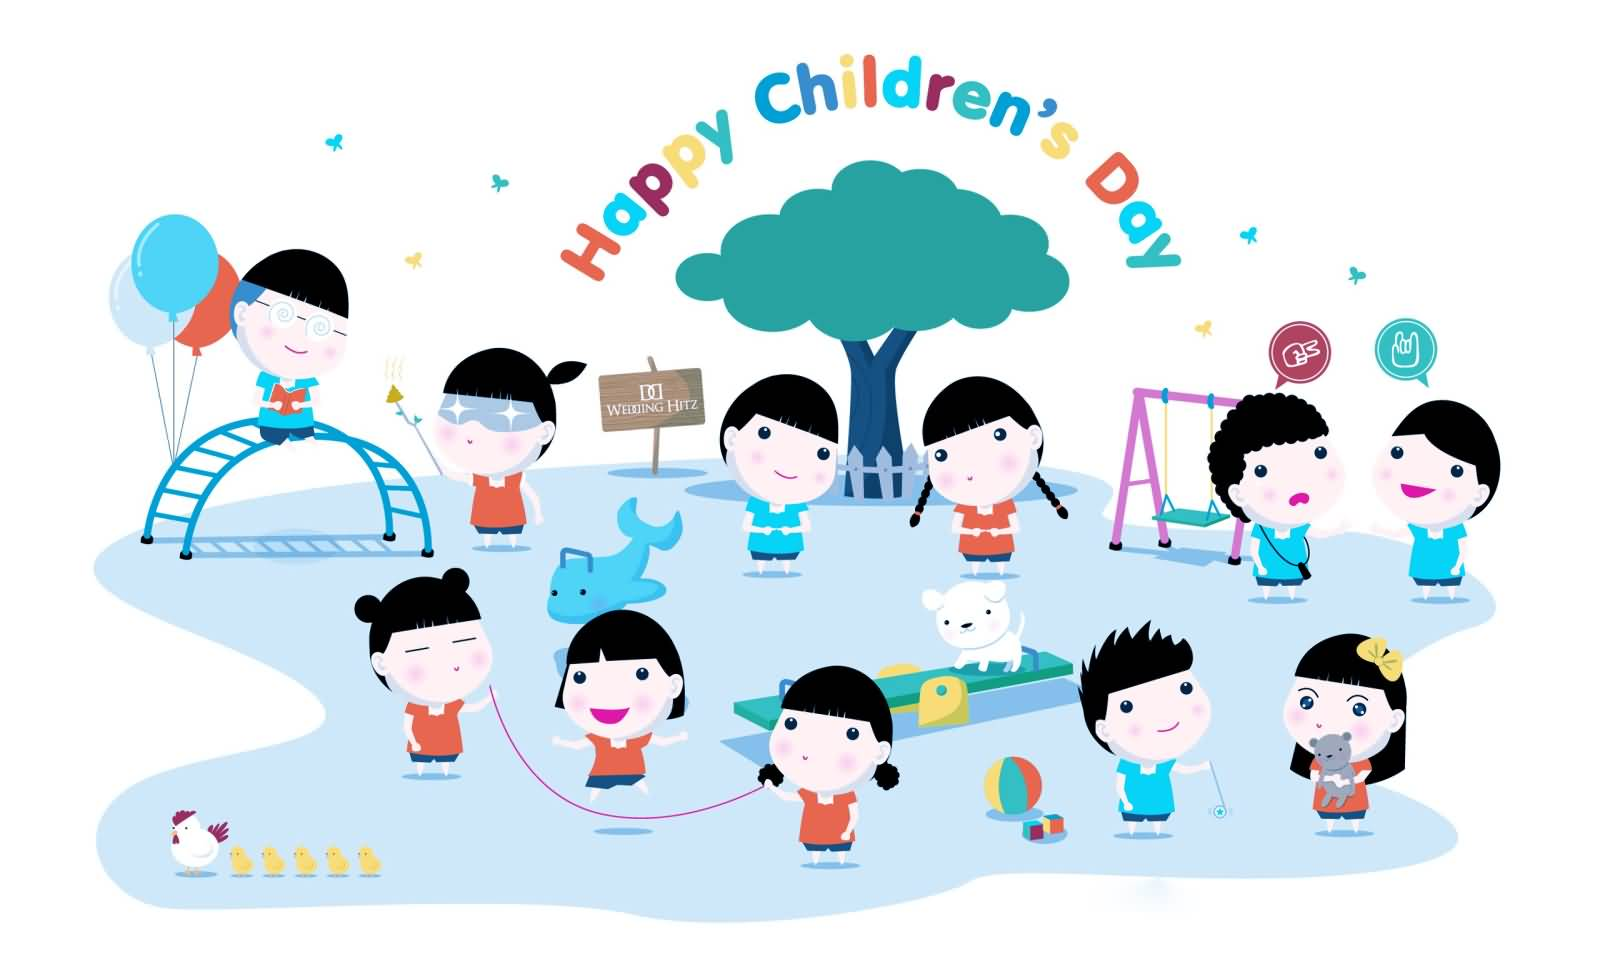 happy childrens day playing kids cartoon picture